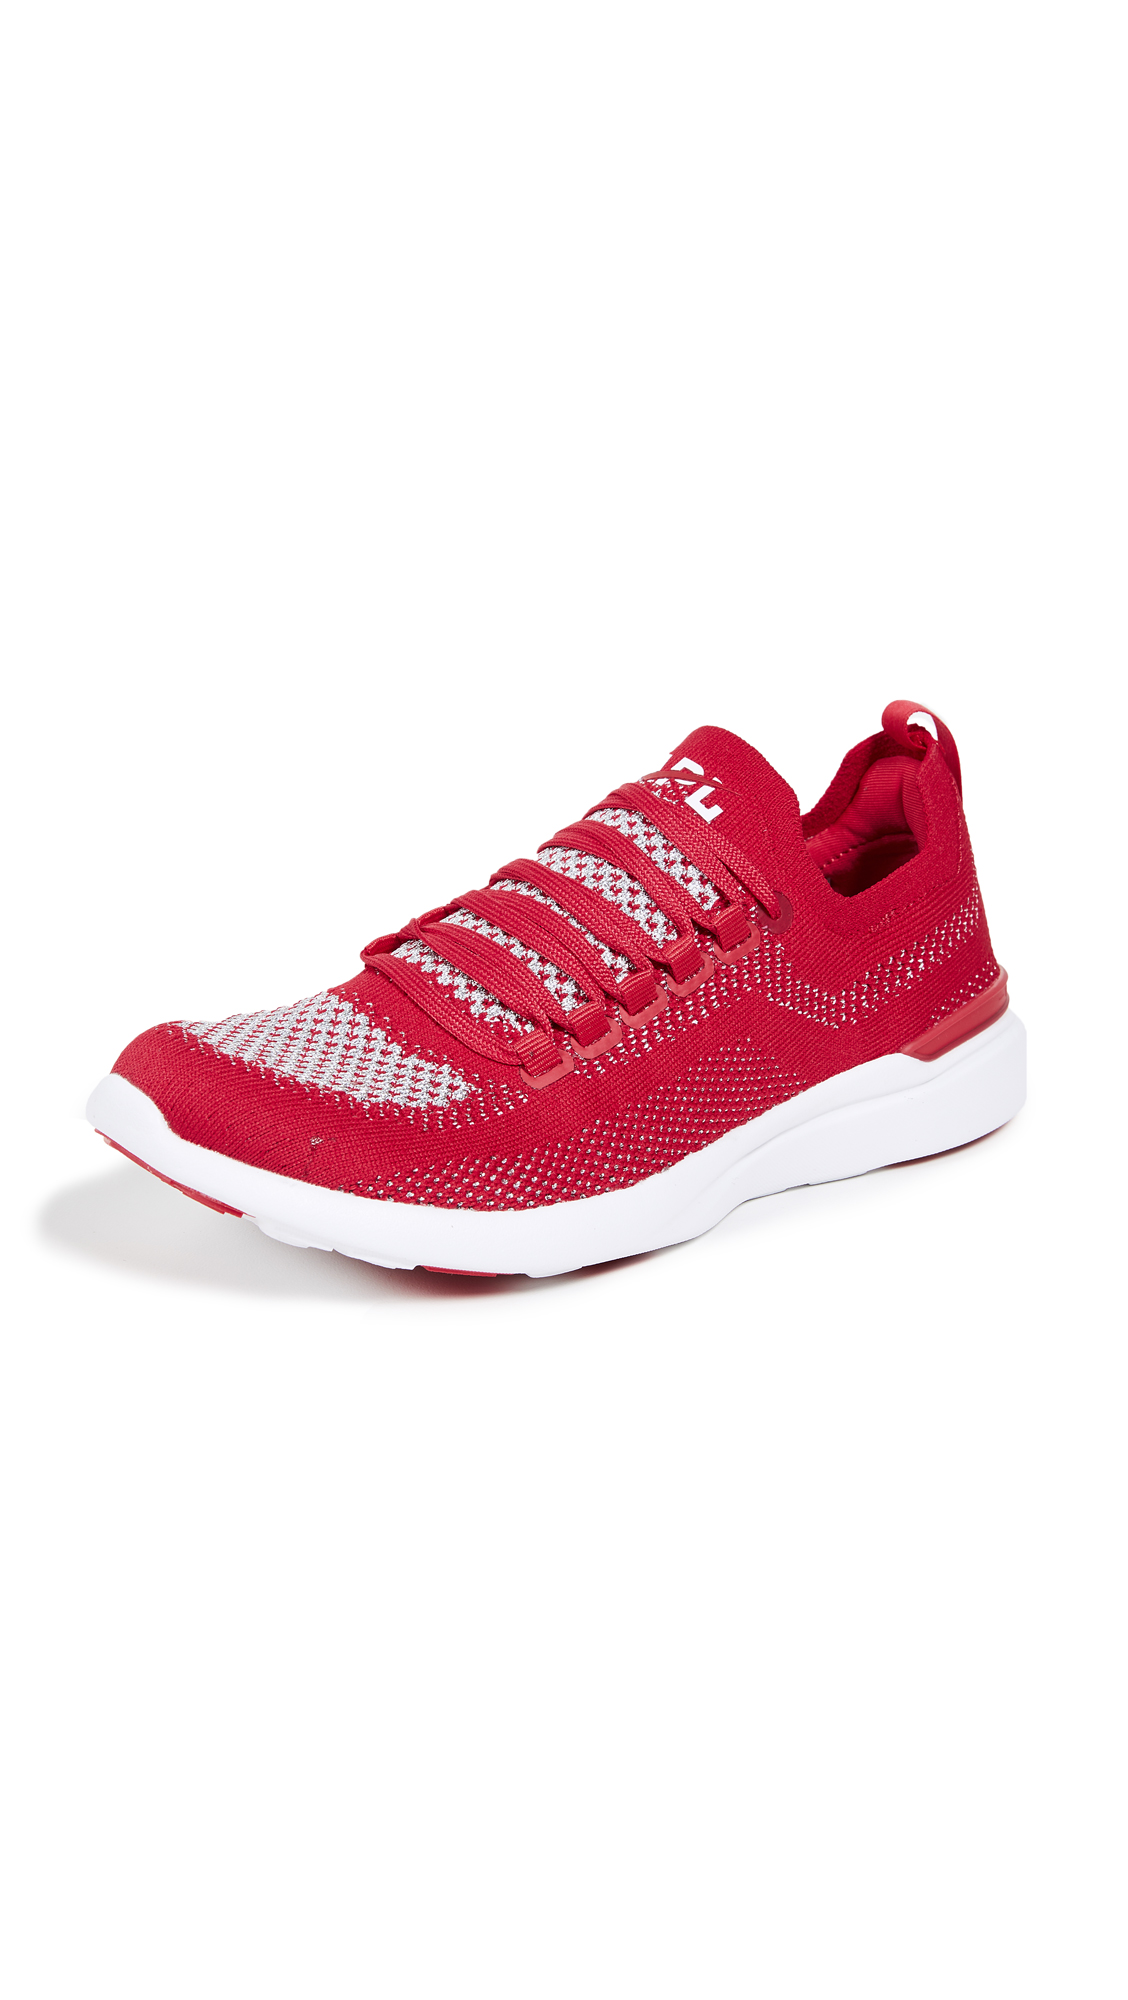 APL: Athletic Propulsion Labs TechLoom Breeze Sneakers - Red/Metallic Silver/White